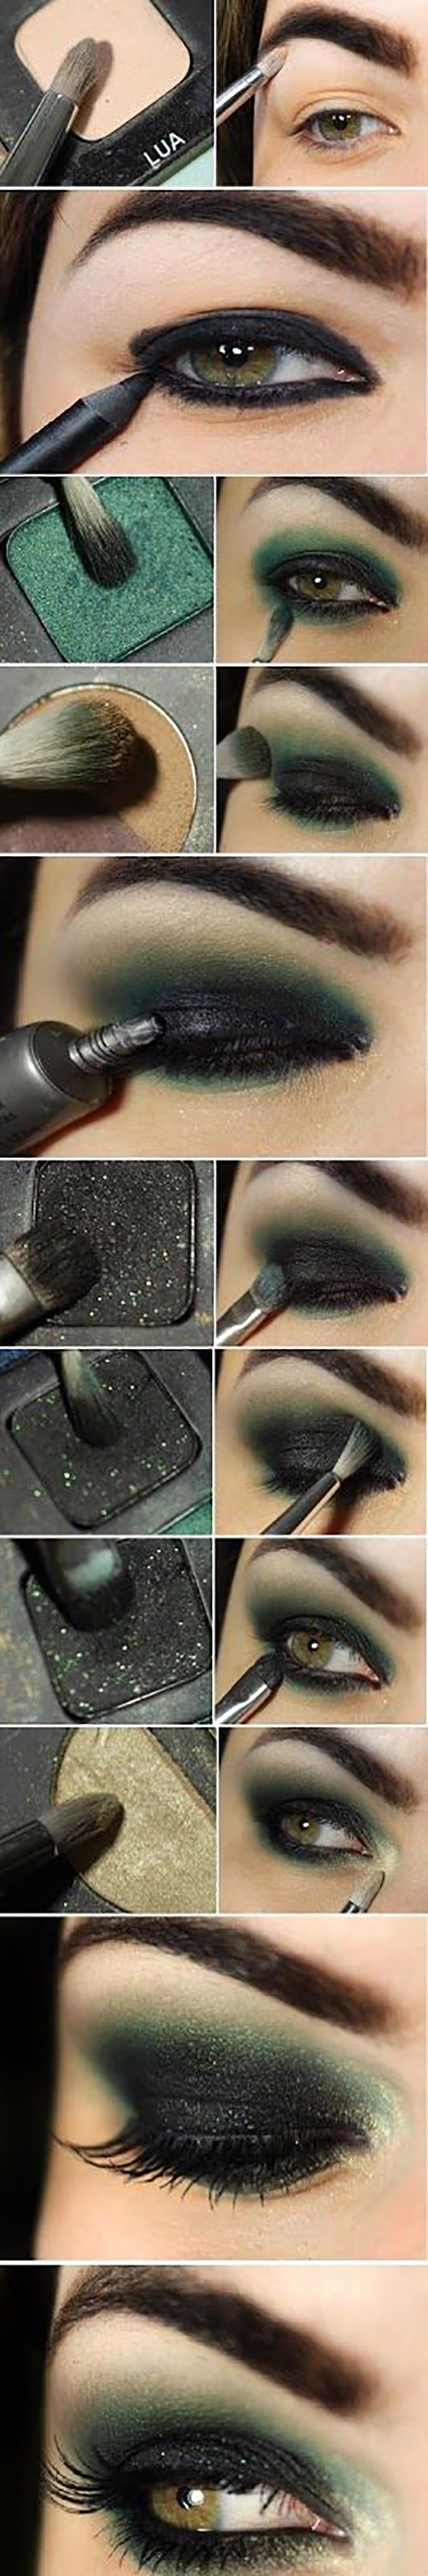 Smokey Eye Makeup Pictures How To Do Smokey Eye Makeup Top 10 Tutorial Pictures For 2019